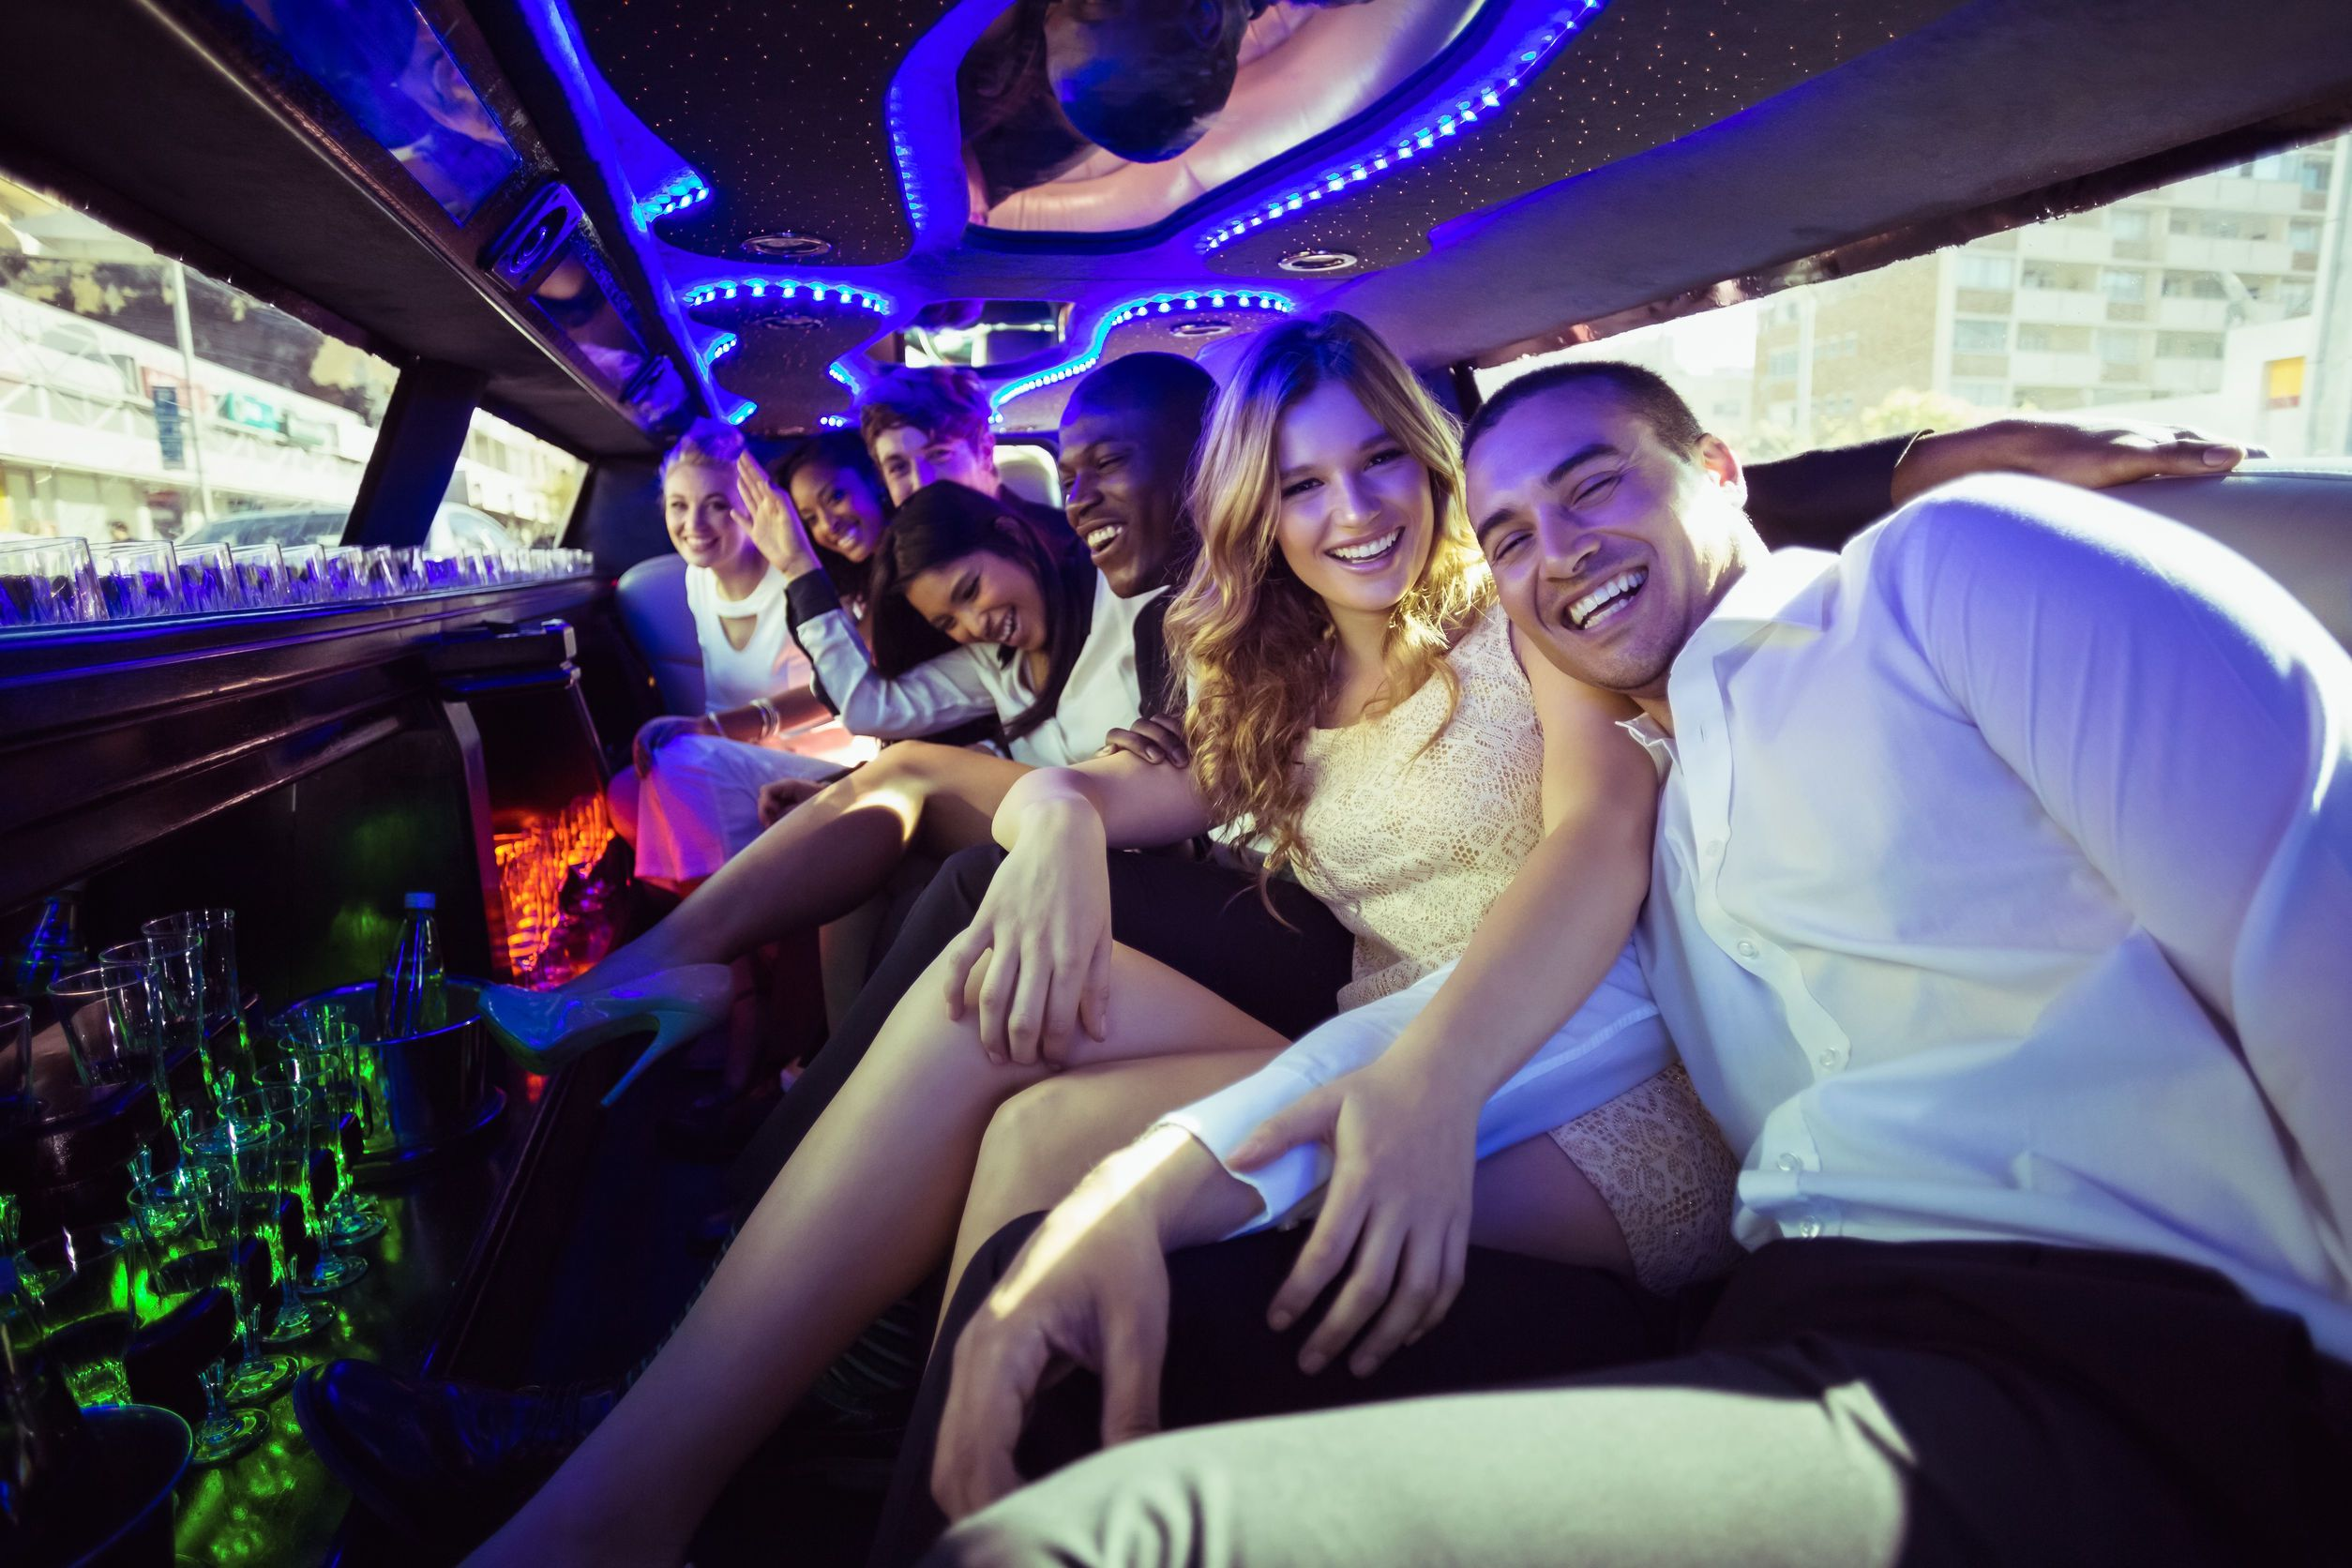 Which Limousine Is Best For Night Parties?